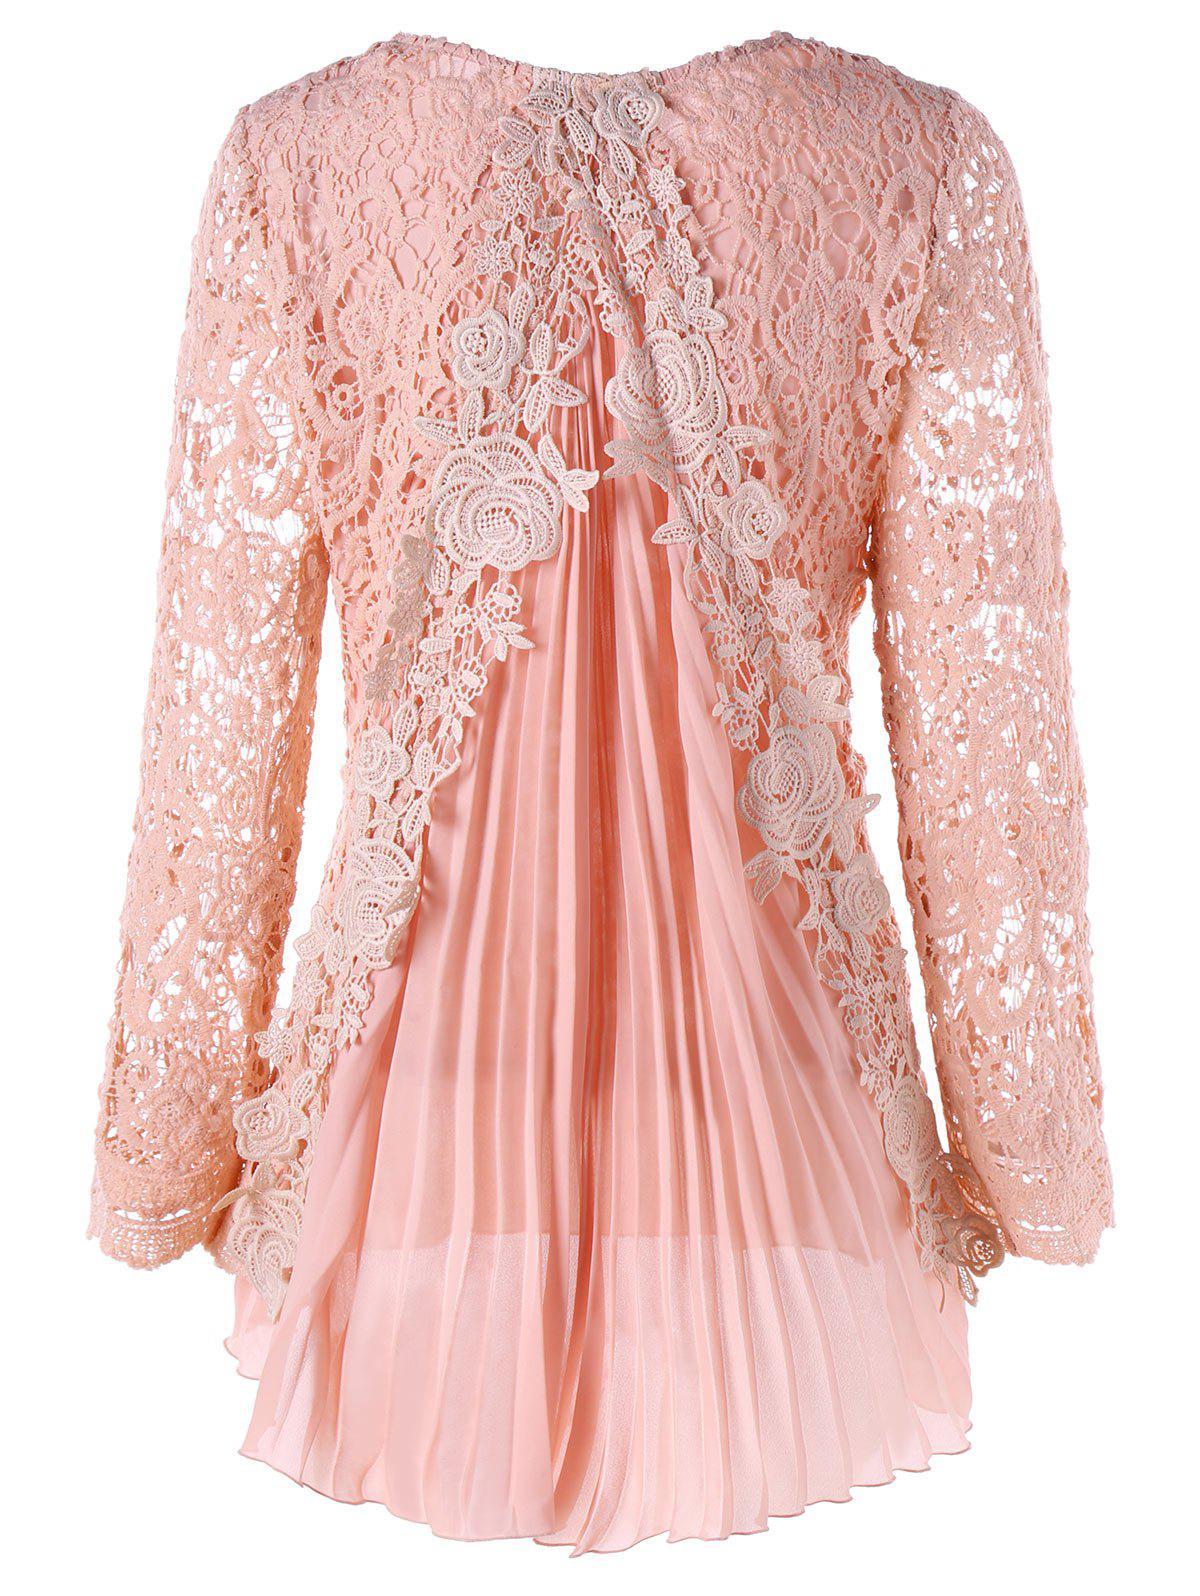 Plus Size High Low Lace Mini Pleated DressWOMEN<br><br>Size: 5XL; Color: PINK; Style: Brief; Material: Polyester; Silhouette: Asymmetrical; Dresses Length: Mini; Neckline: Round Collar; Sleeve Length: Long Sleeves; Pattern Type: Patchwork,Solid Color; With Belt: No; Season: Fall,Spring; Weight: 0.4500kg; Package Contents: 1 x Dress;